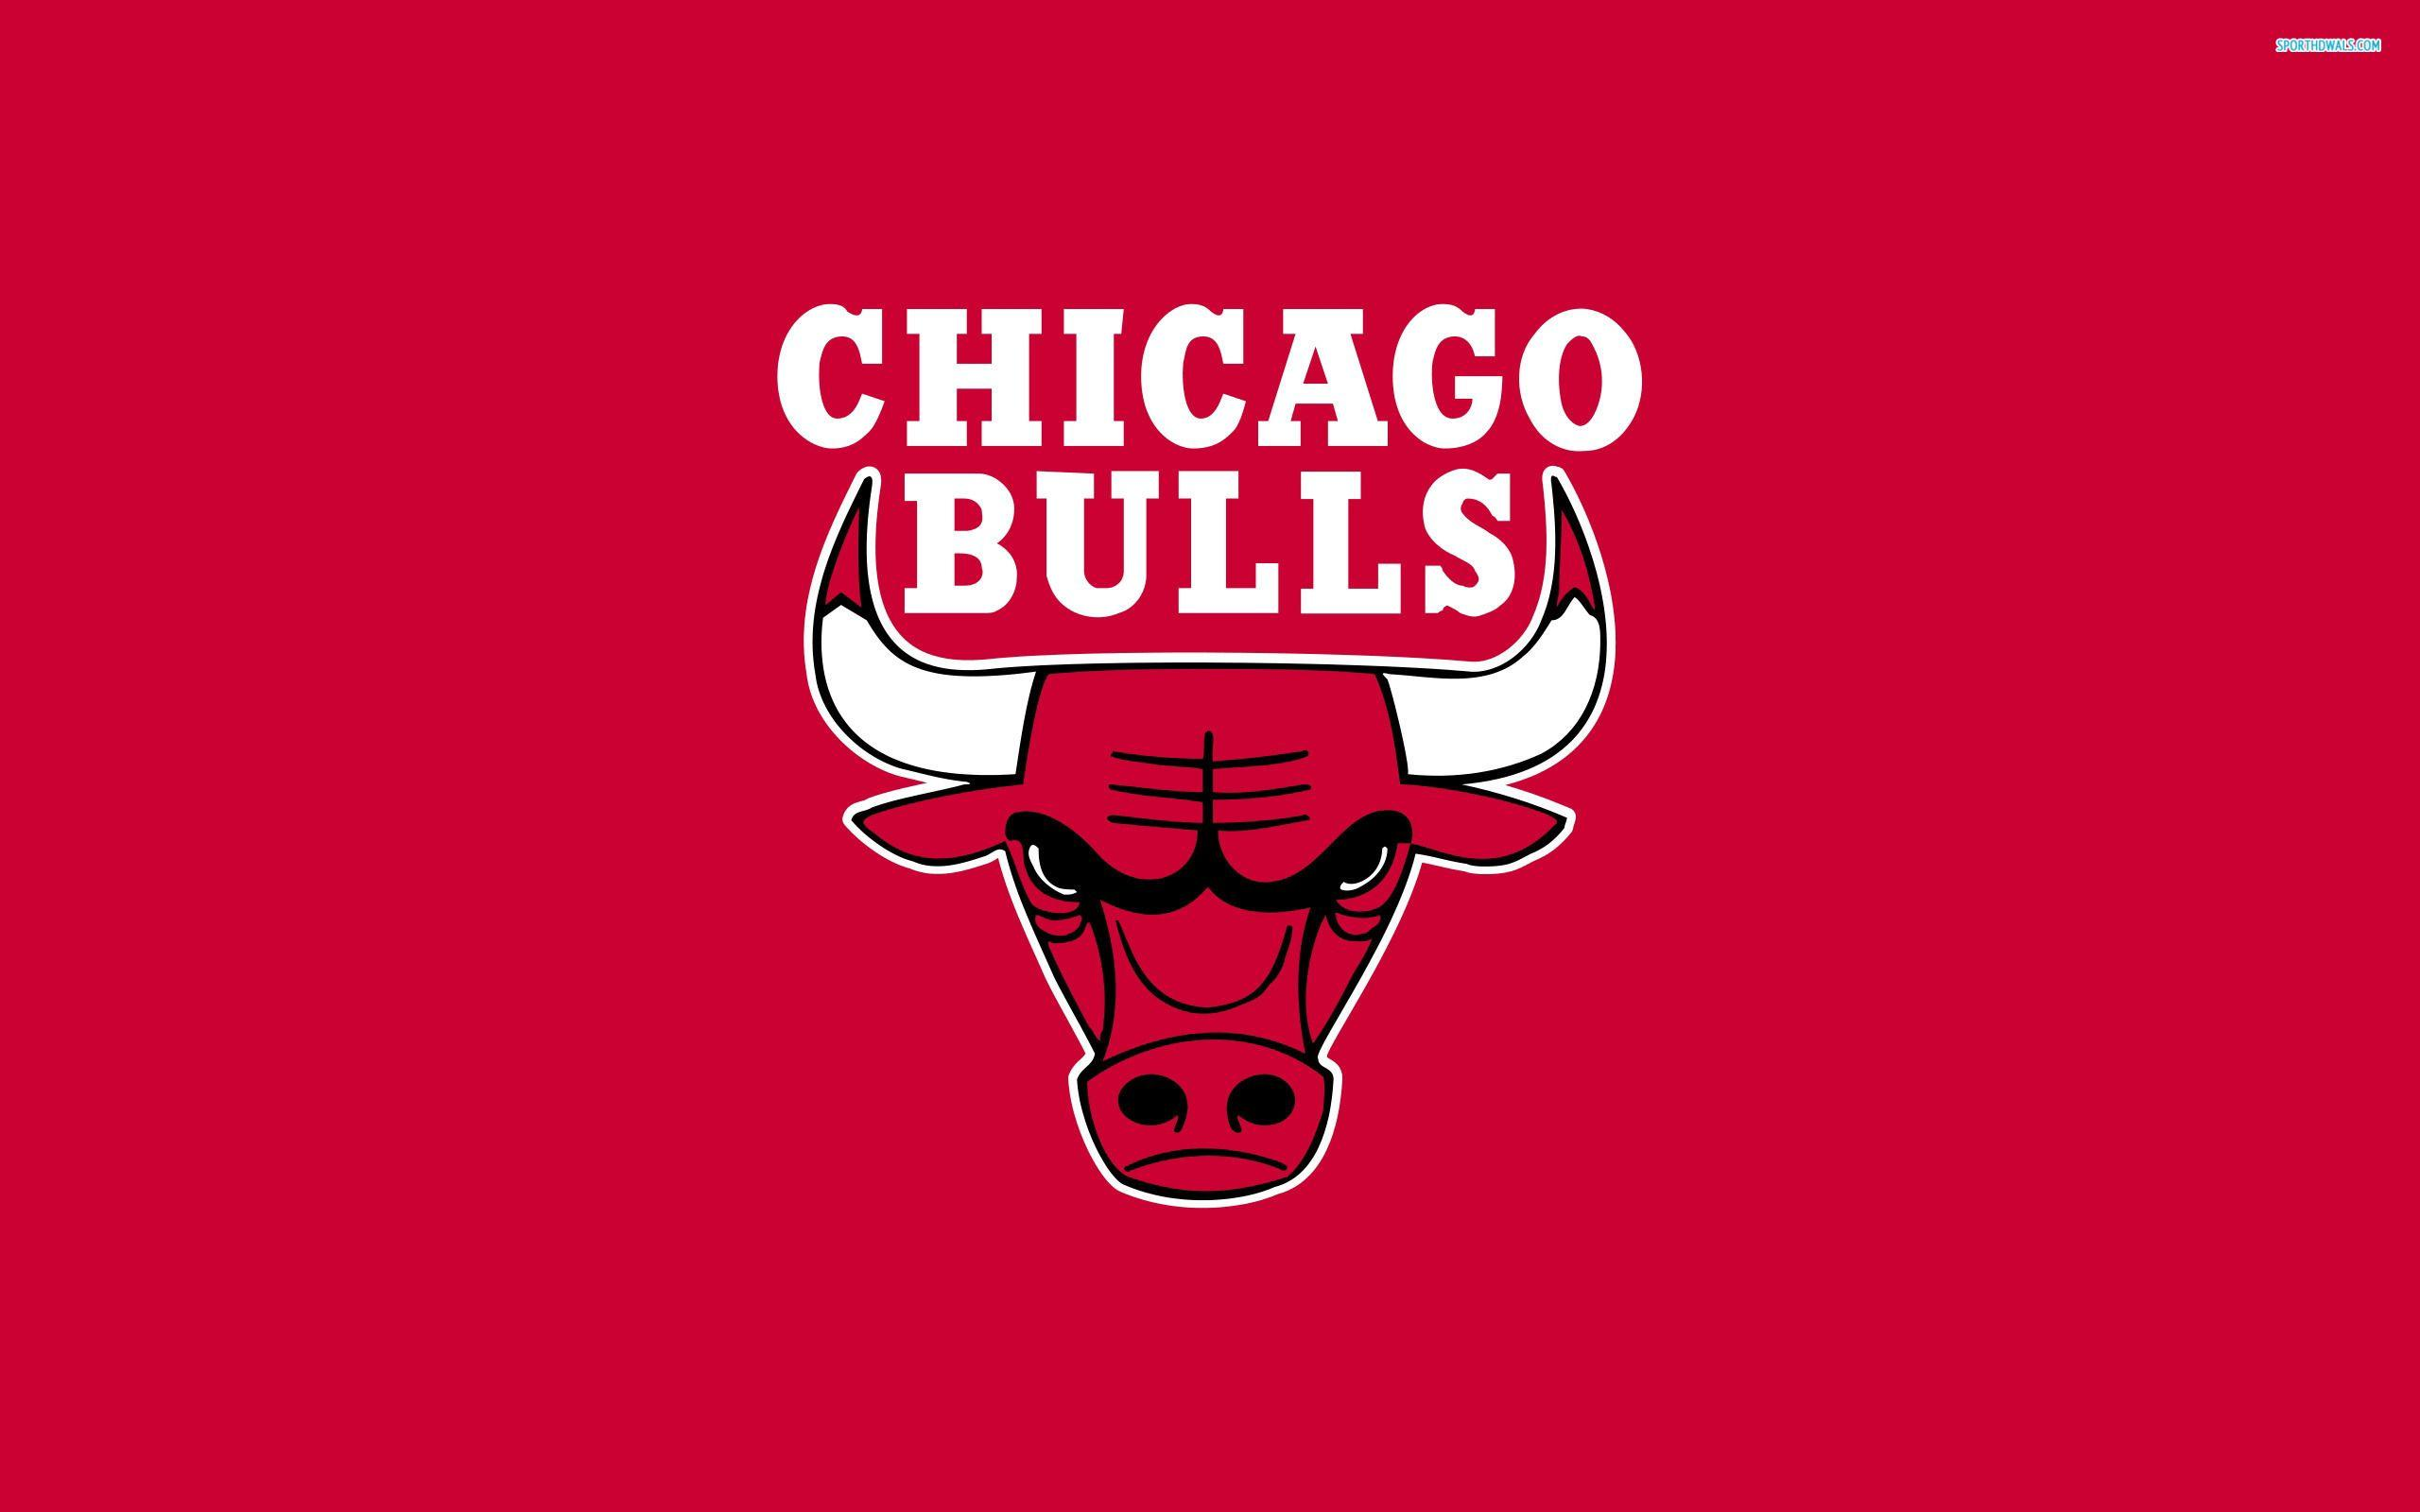 Chicago bulls wallpapers hd wallpaper cave 2013 chicago bulls wallpaper hd 5 24508 images hd wallpapers voltagebd Images